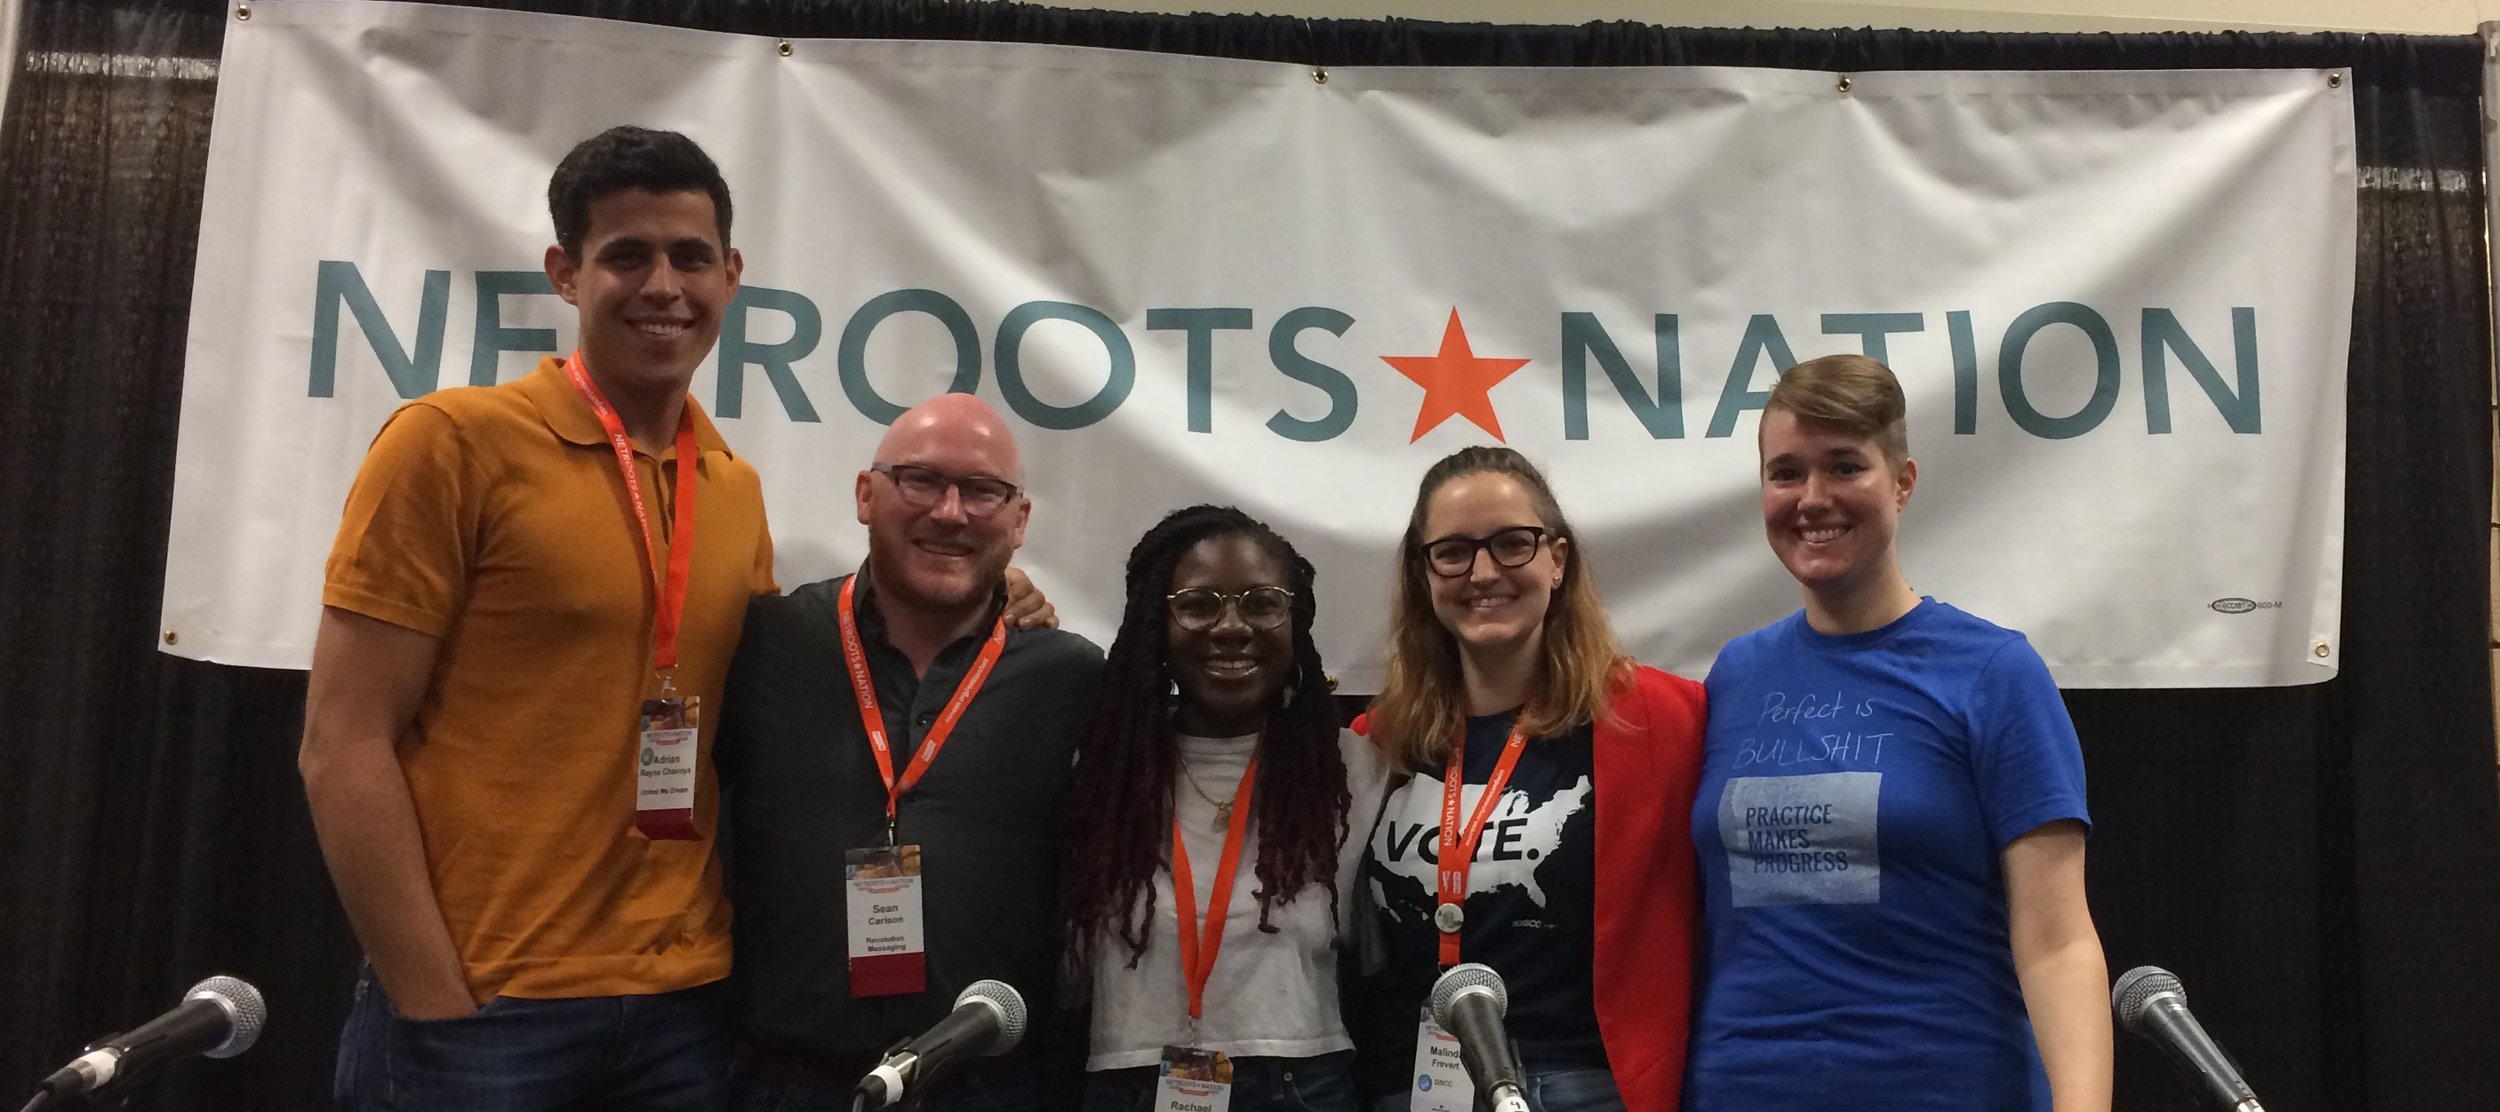 Manager-Confessions-Netroots-18.JPG